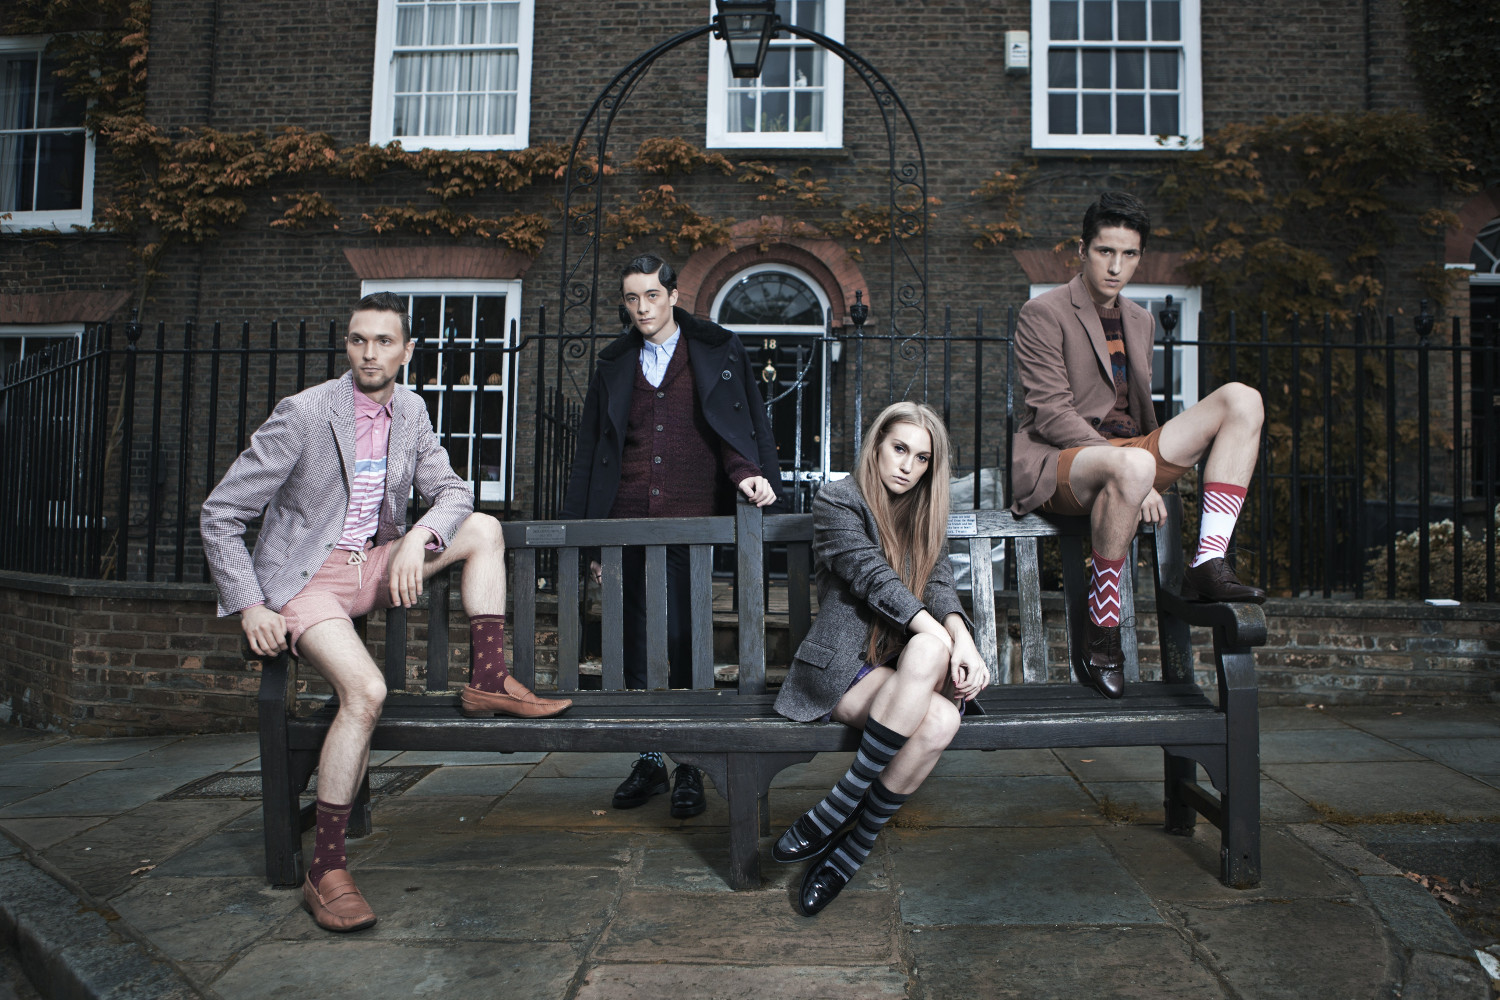 Photography of group of people sitting on bench